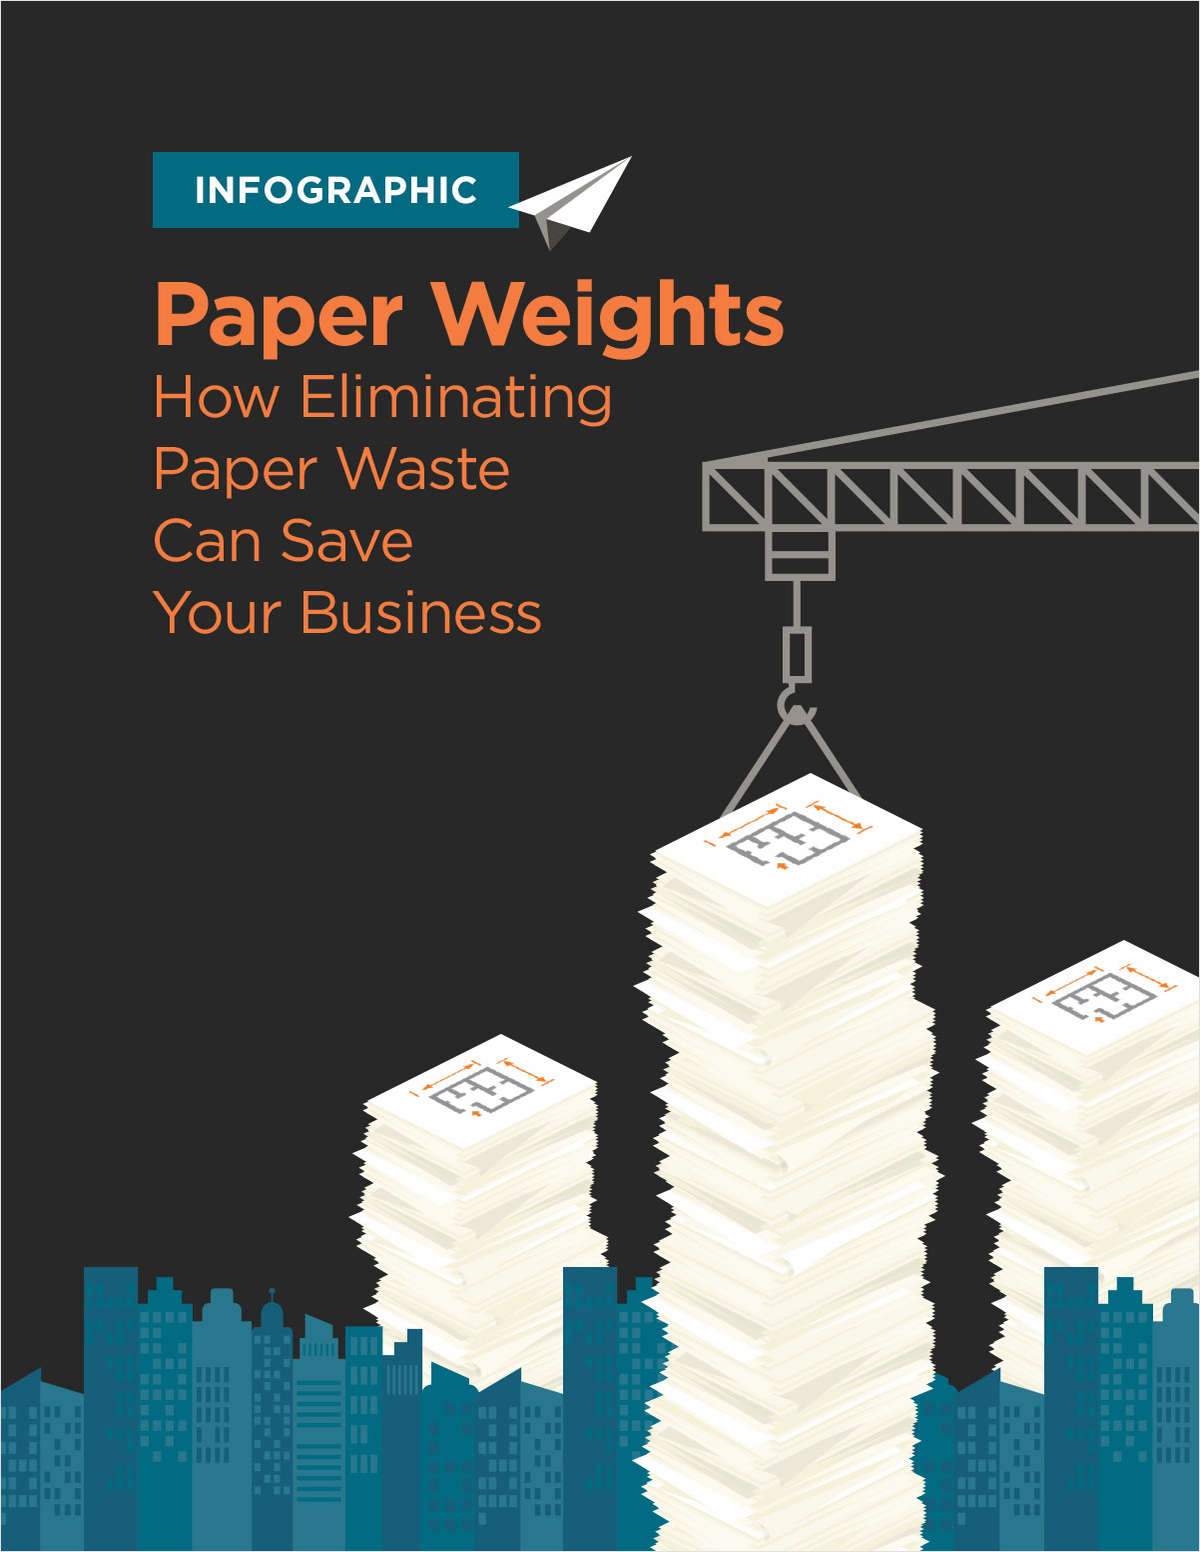 Paper Weights - How Eliminating Paper Waste Can Save Your Business